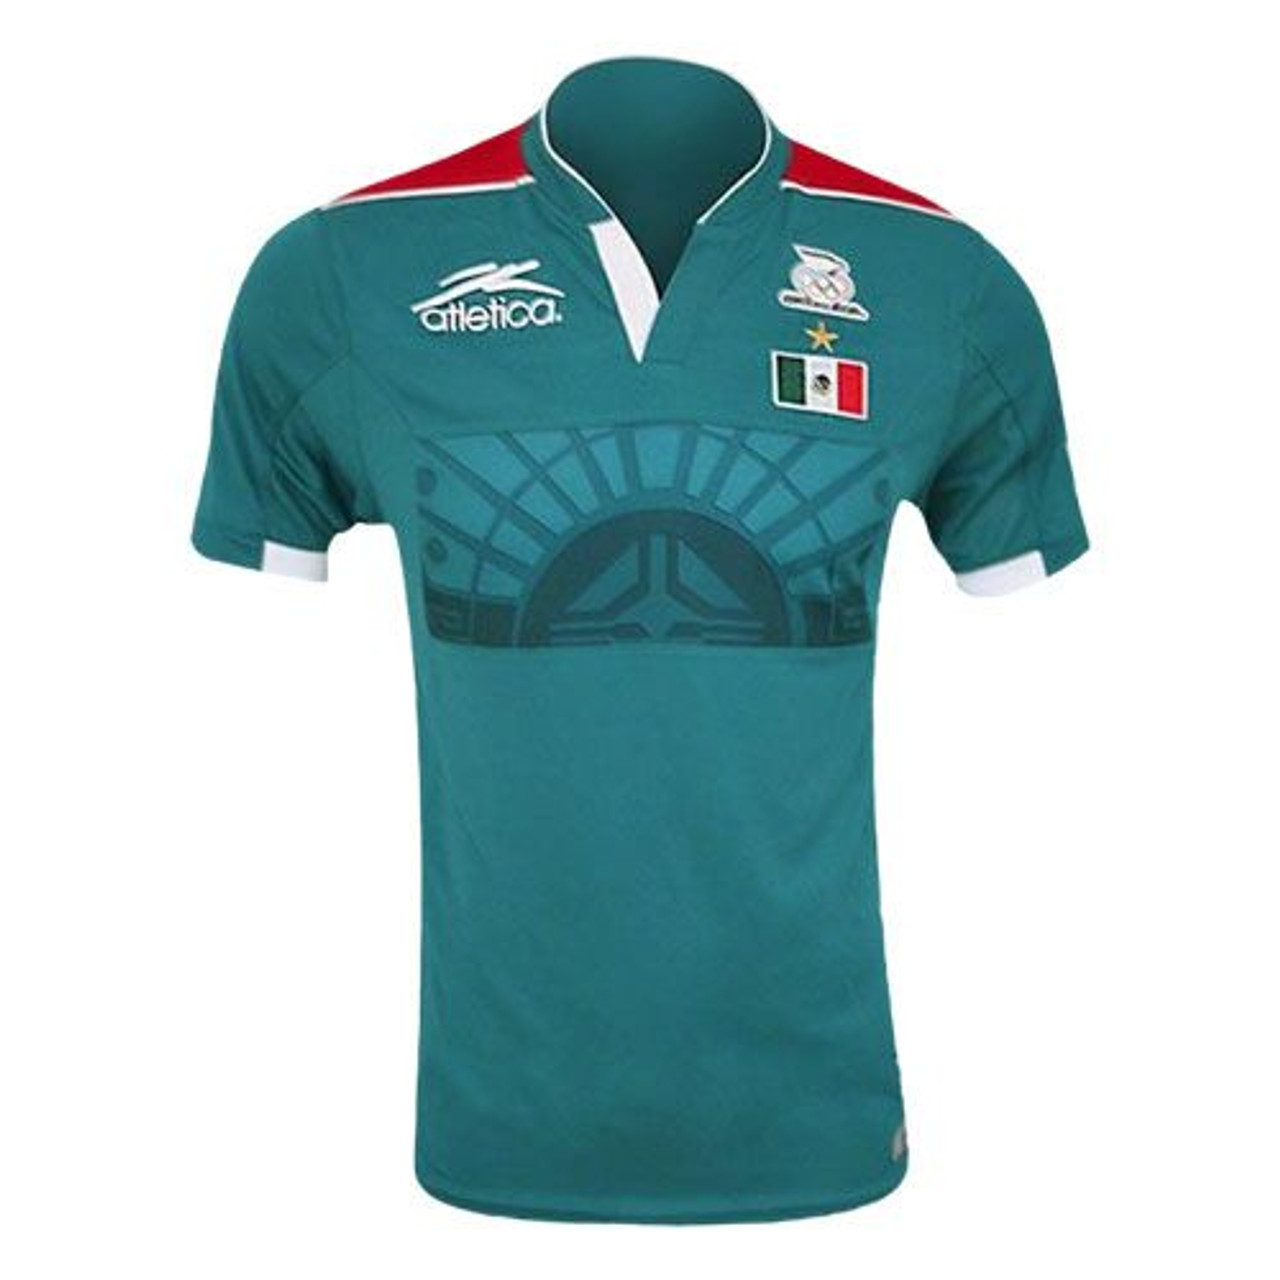 ATLETICA MEXICO OLYMPIC 2012 HOME JERSEY